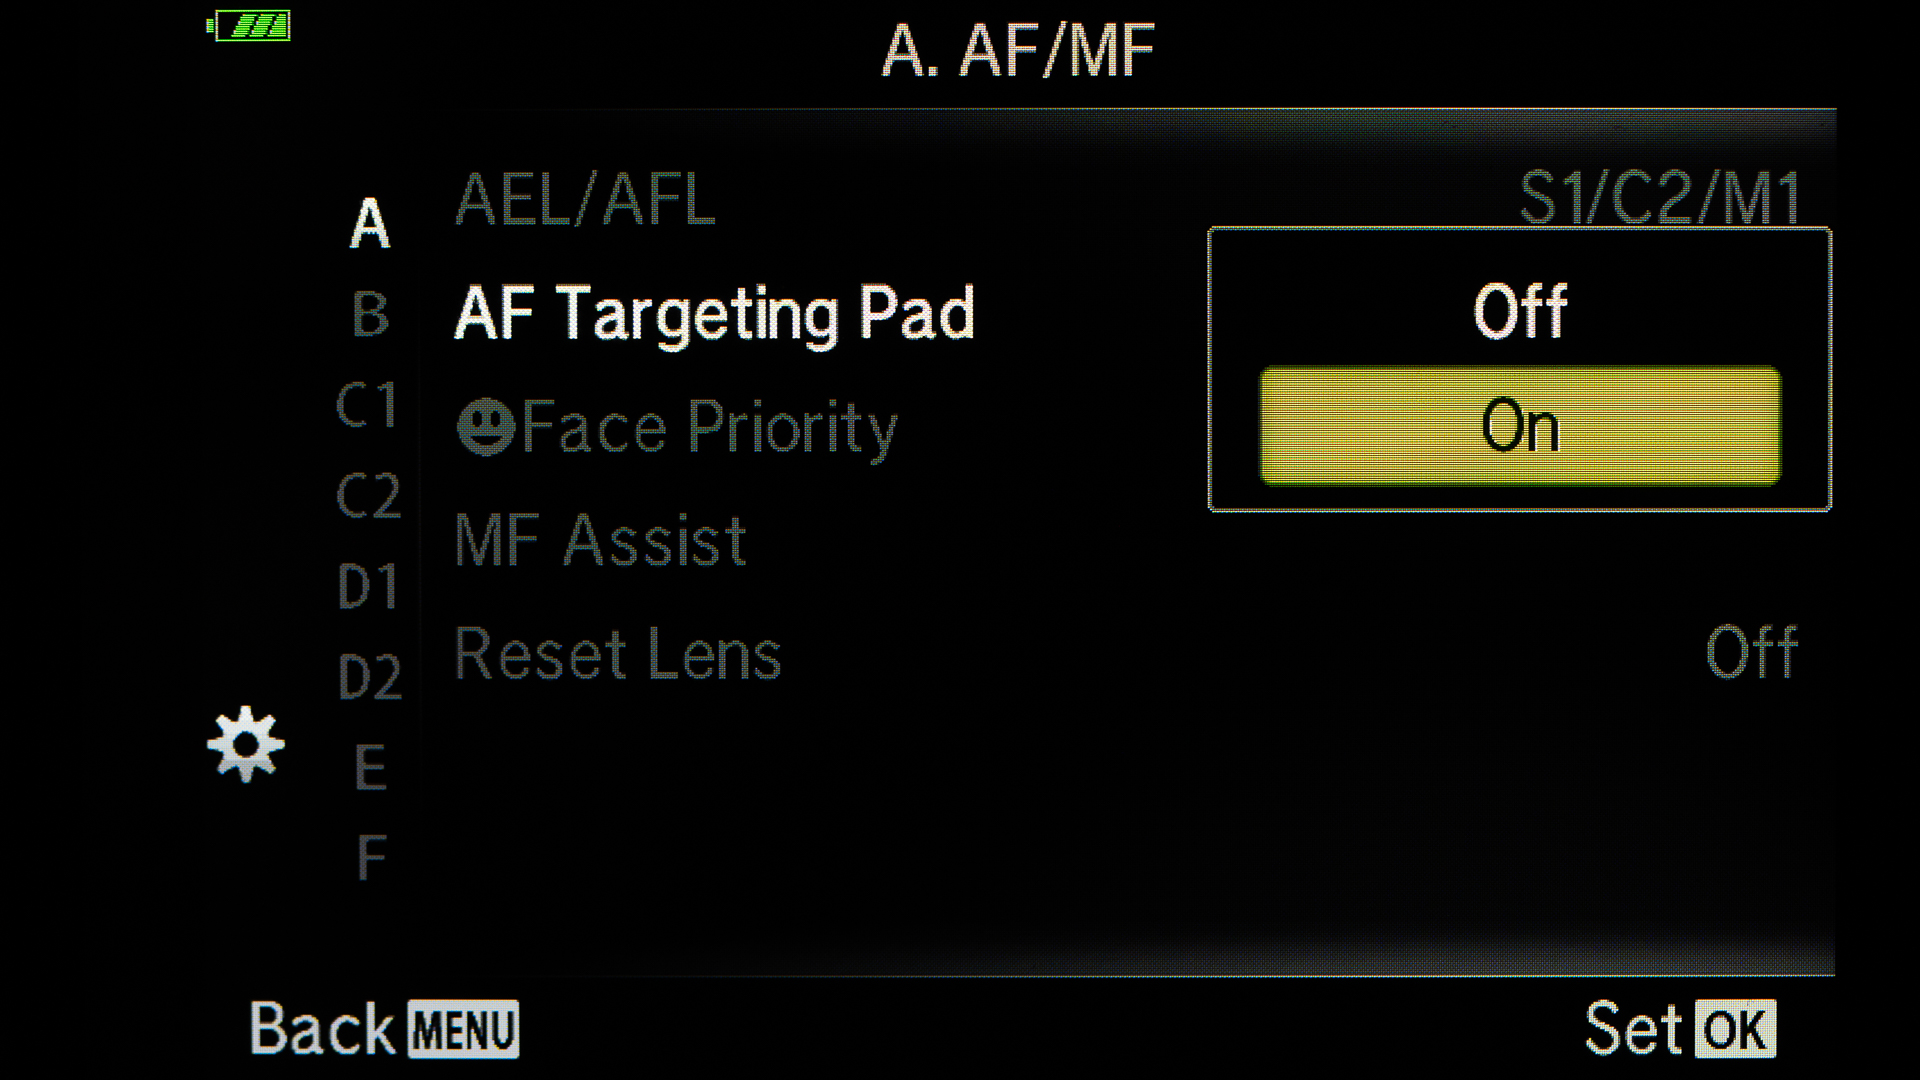 Turn on the AF Targeting Pad to choose the focus point from the LCD.